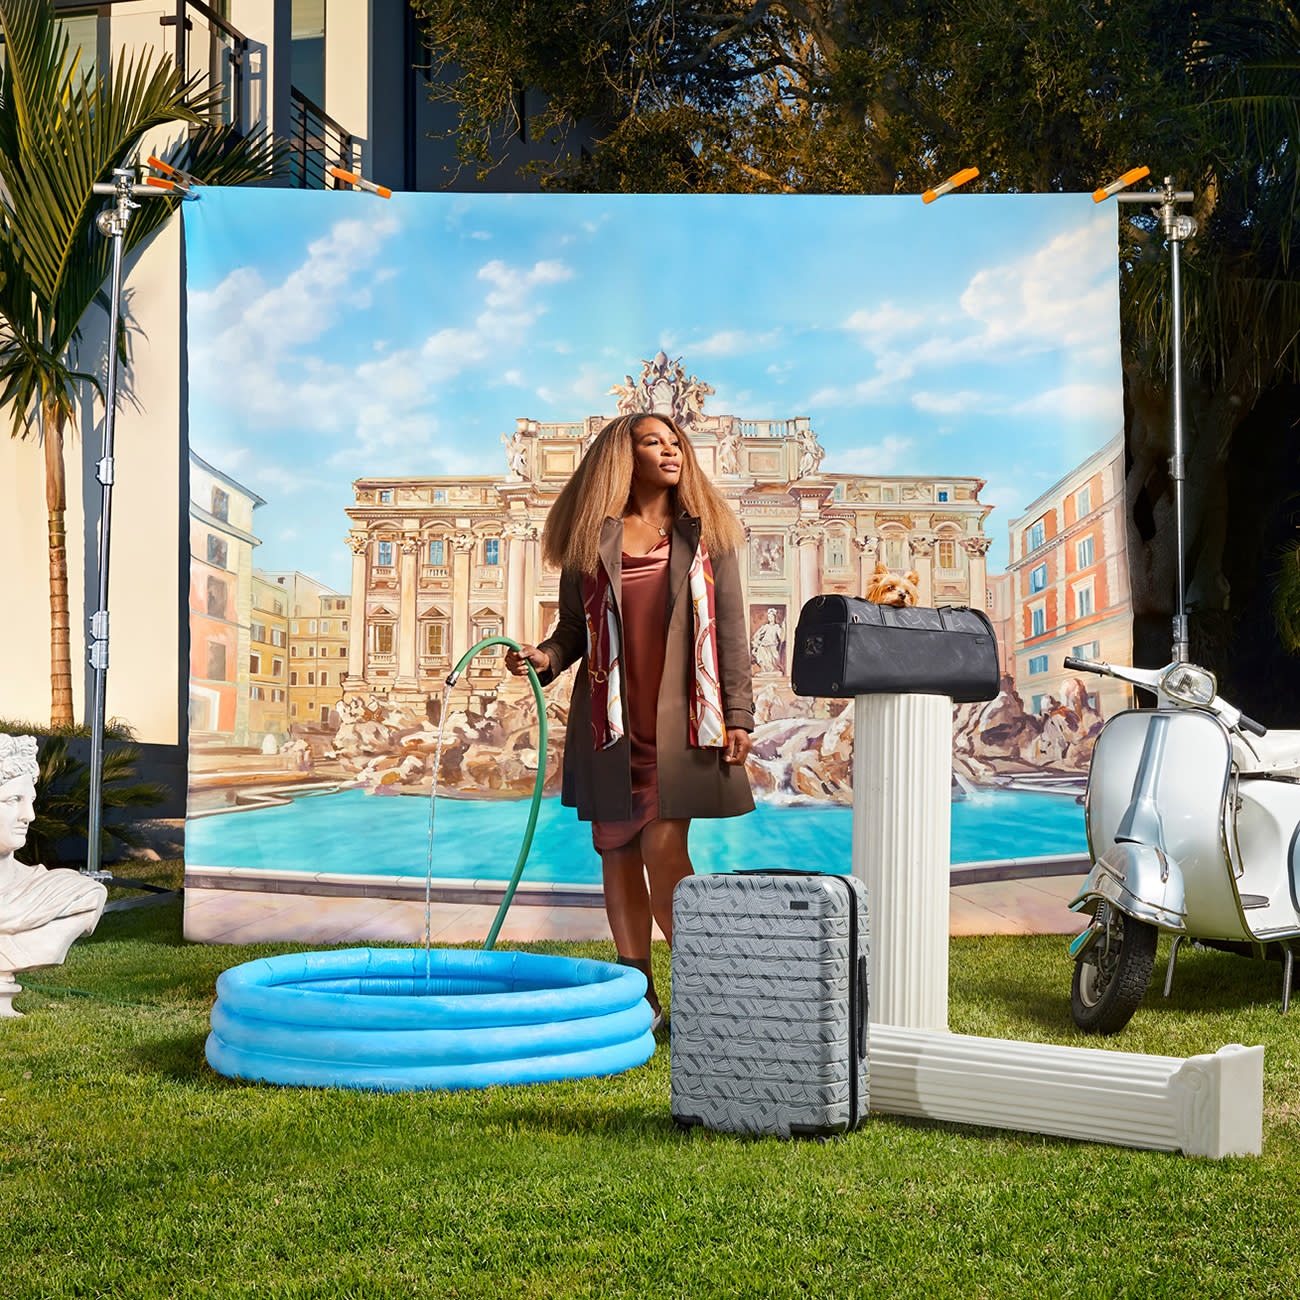 Serena Williams gazing in the distance with a hose filling a blue inflatable pool in her hand, a grey Away carry-on suitcase and a pet carrier displayed on a column.